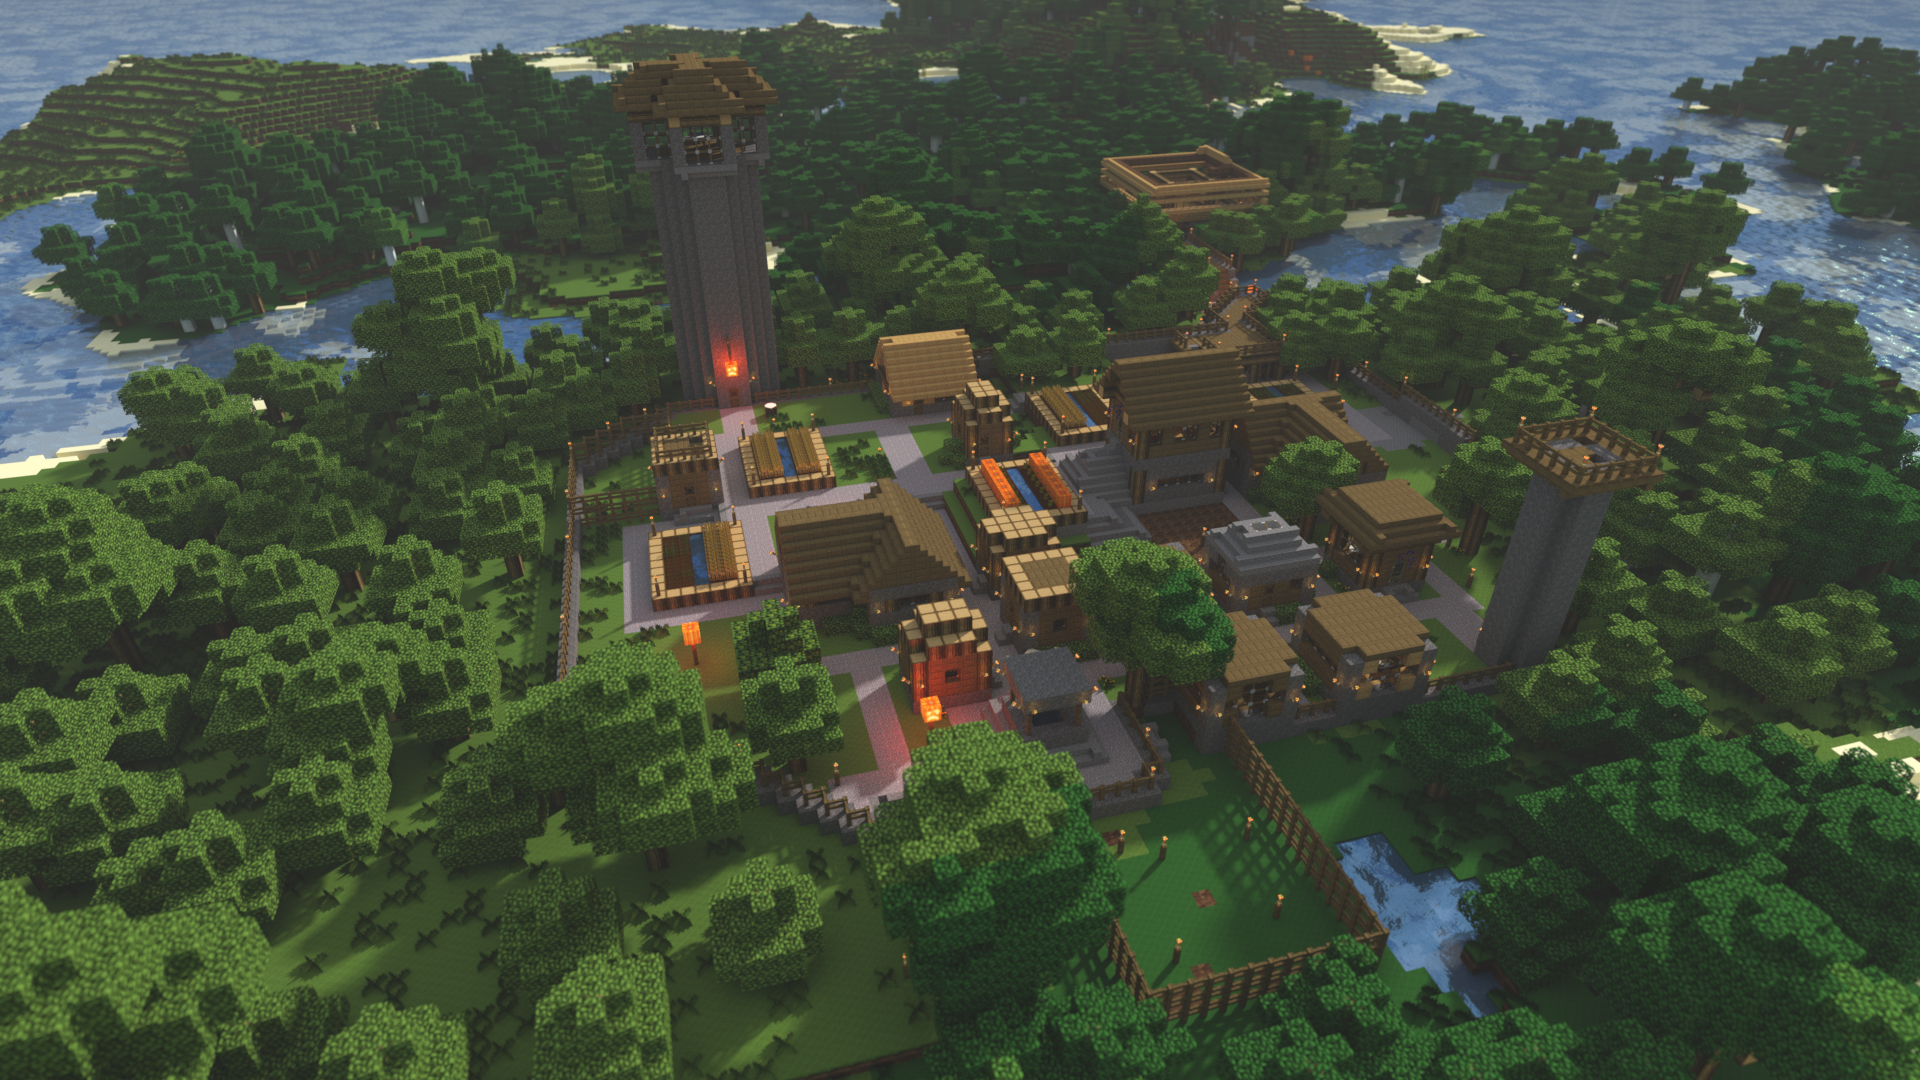 <b>Minecraft village</b> render by fuchi on DeviantArt